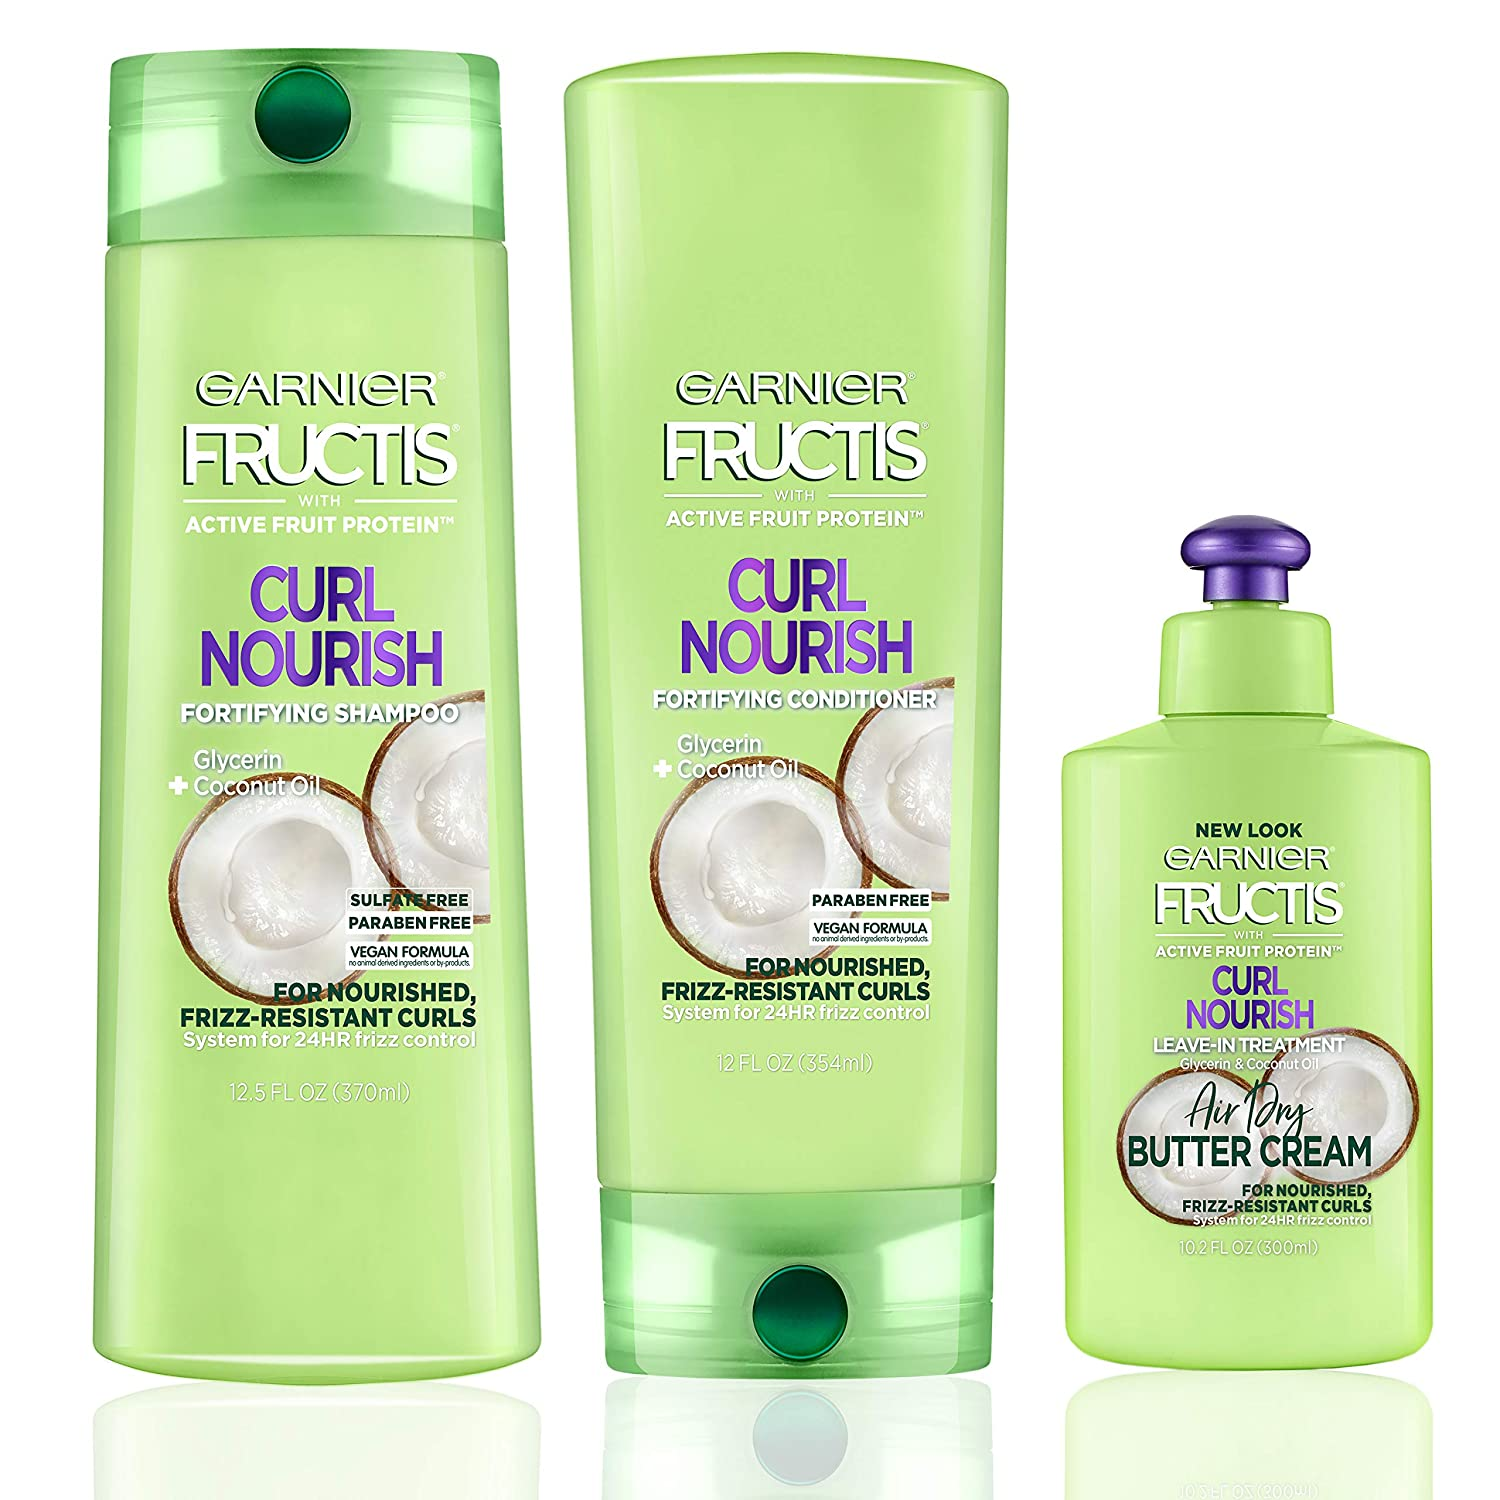 Leave in conditioner for permed hair